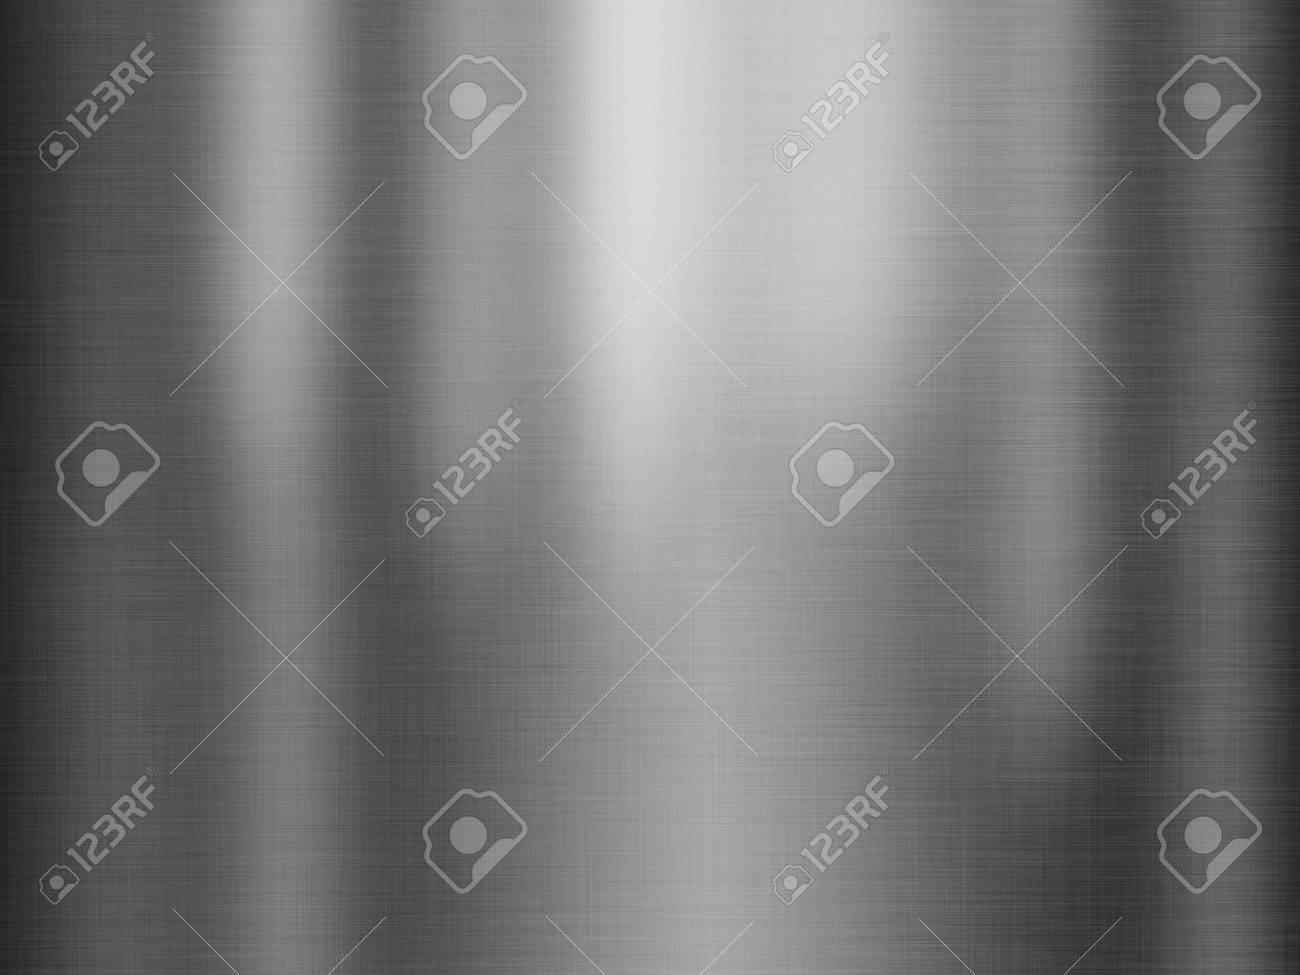 Stainless steel texture or metal texture background Banque d'images - 75076764